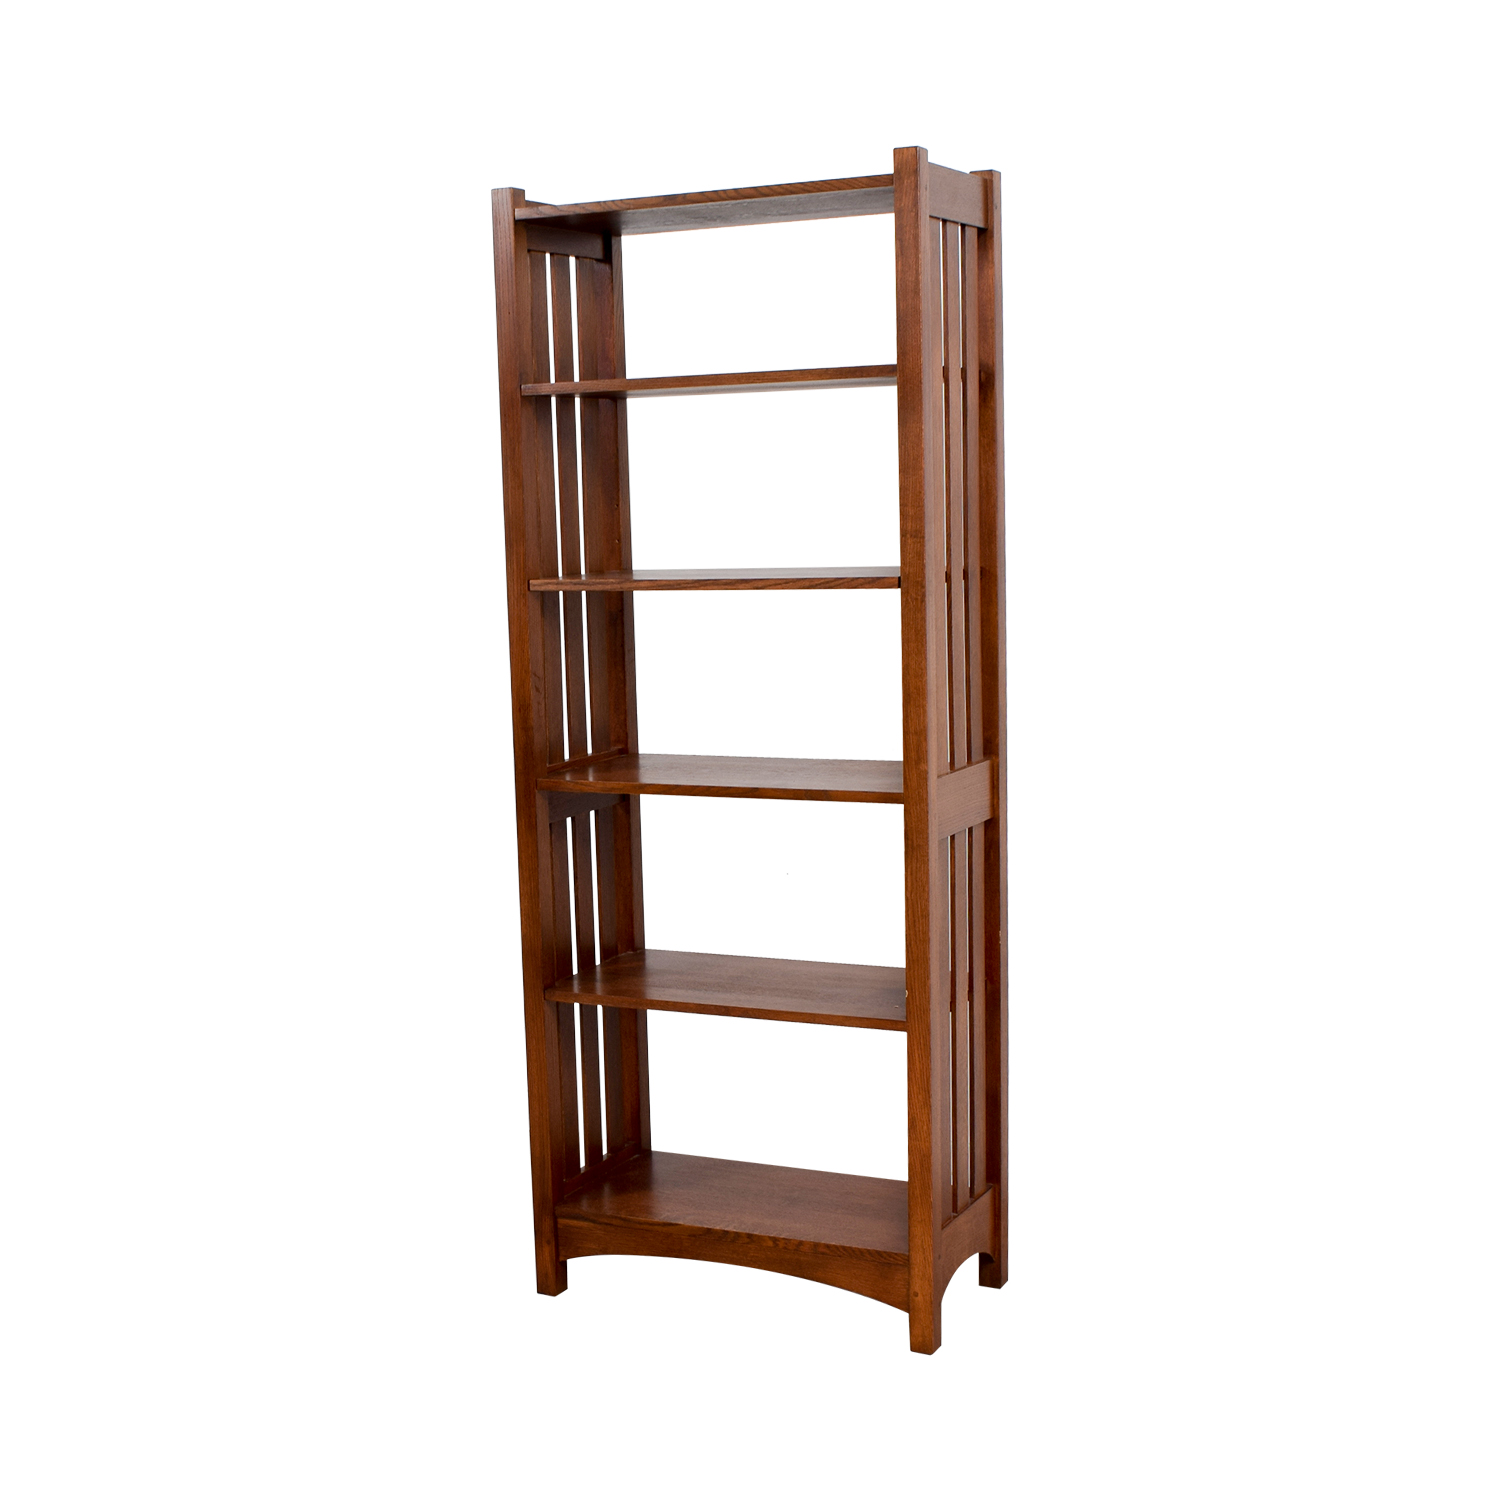 ABC Carpet and Home ABC Carpet and Home Wood Caged Bookcase second hand